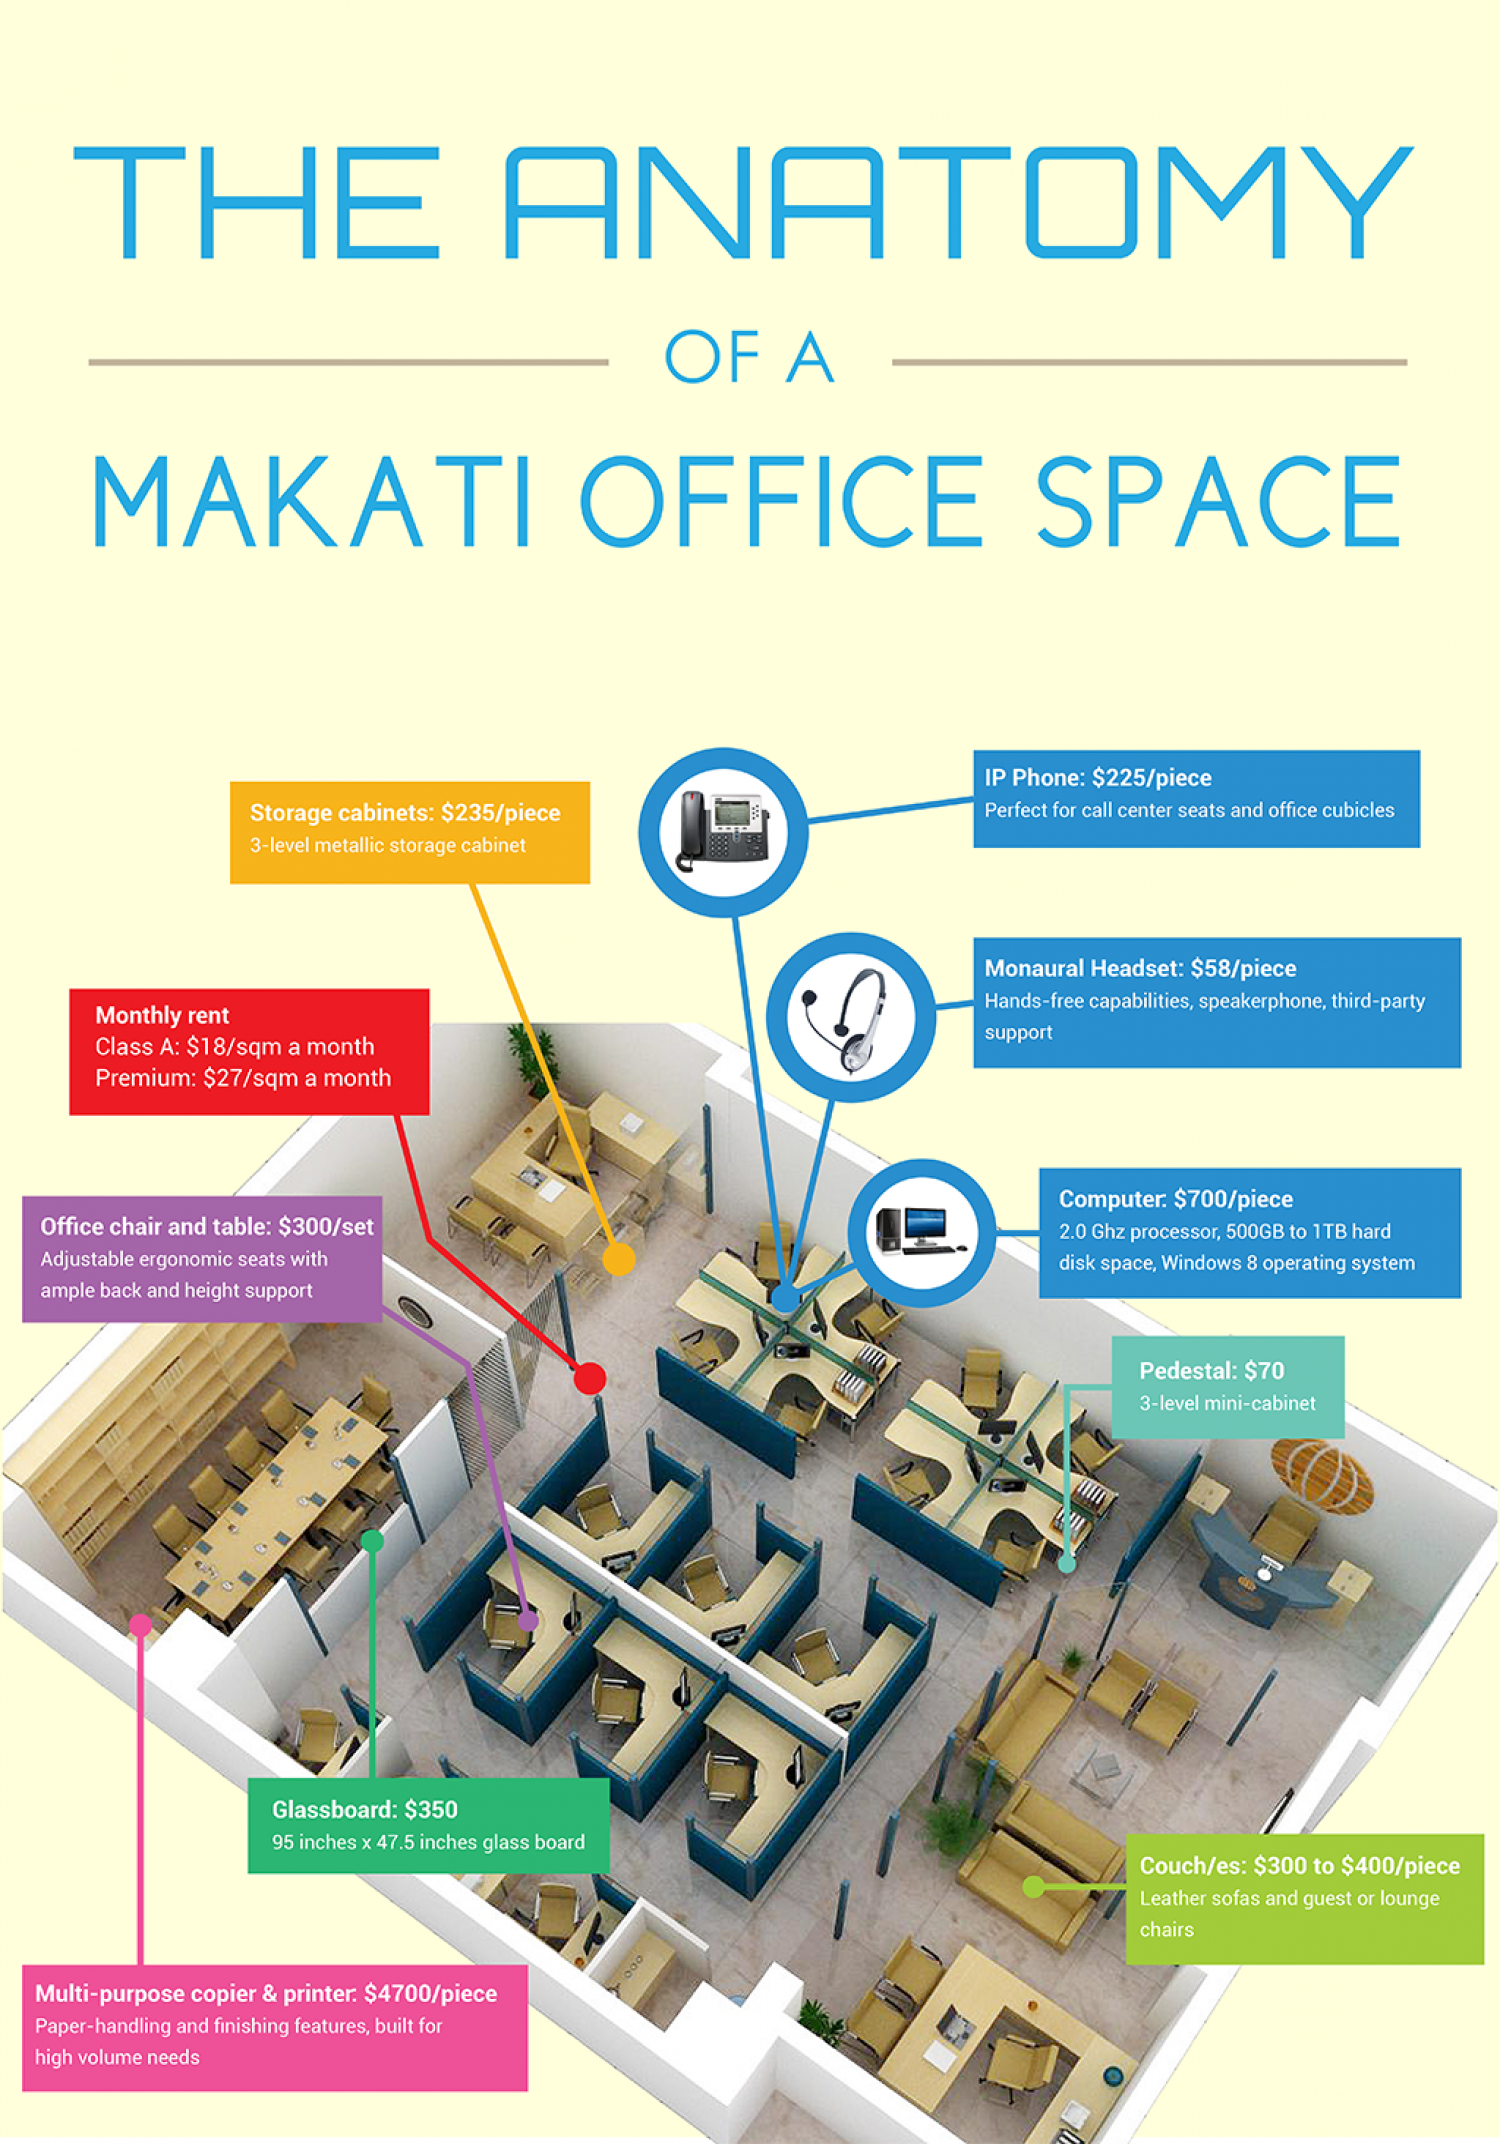 The Anatomy of a Makati Office Space Infographic